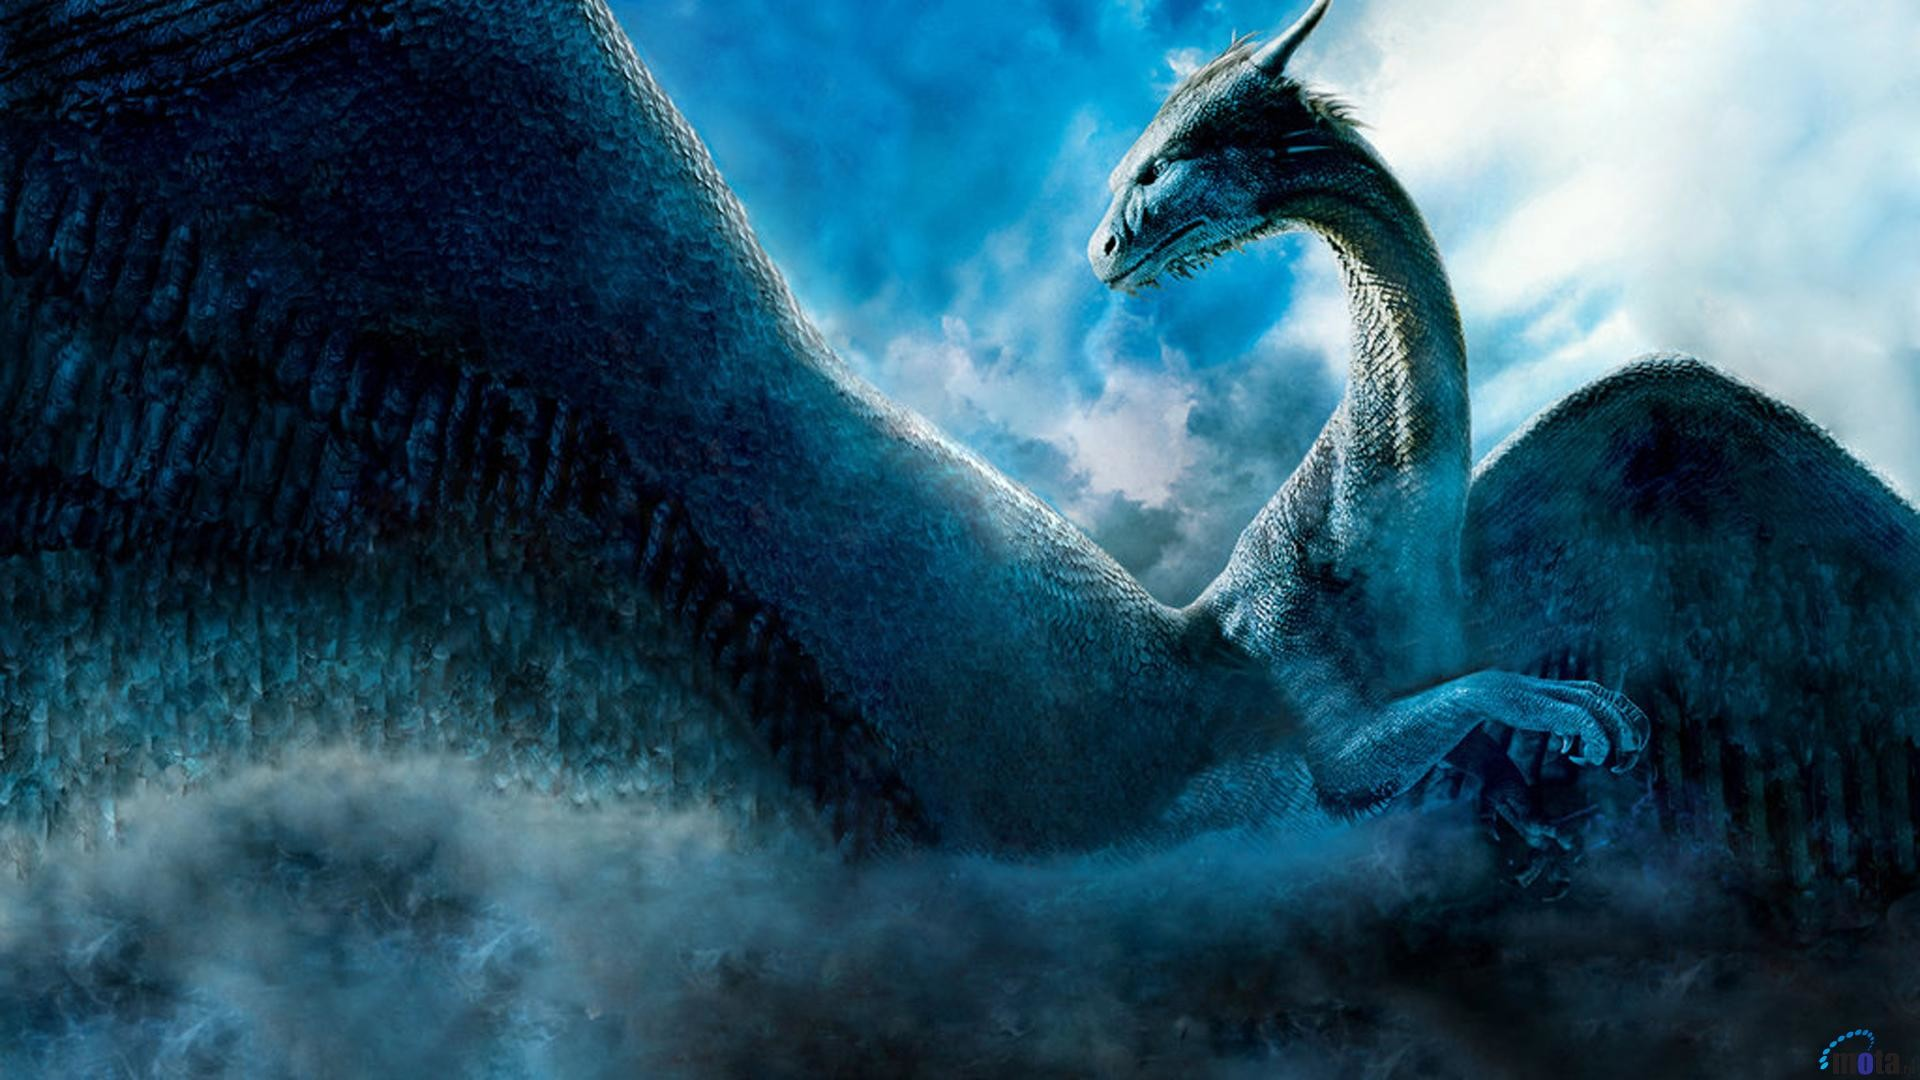 Dragon Wallpapers 1920x1080 77 Background Pictures